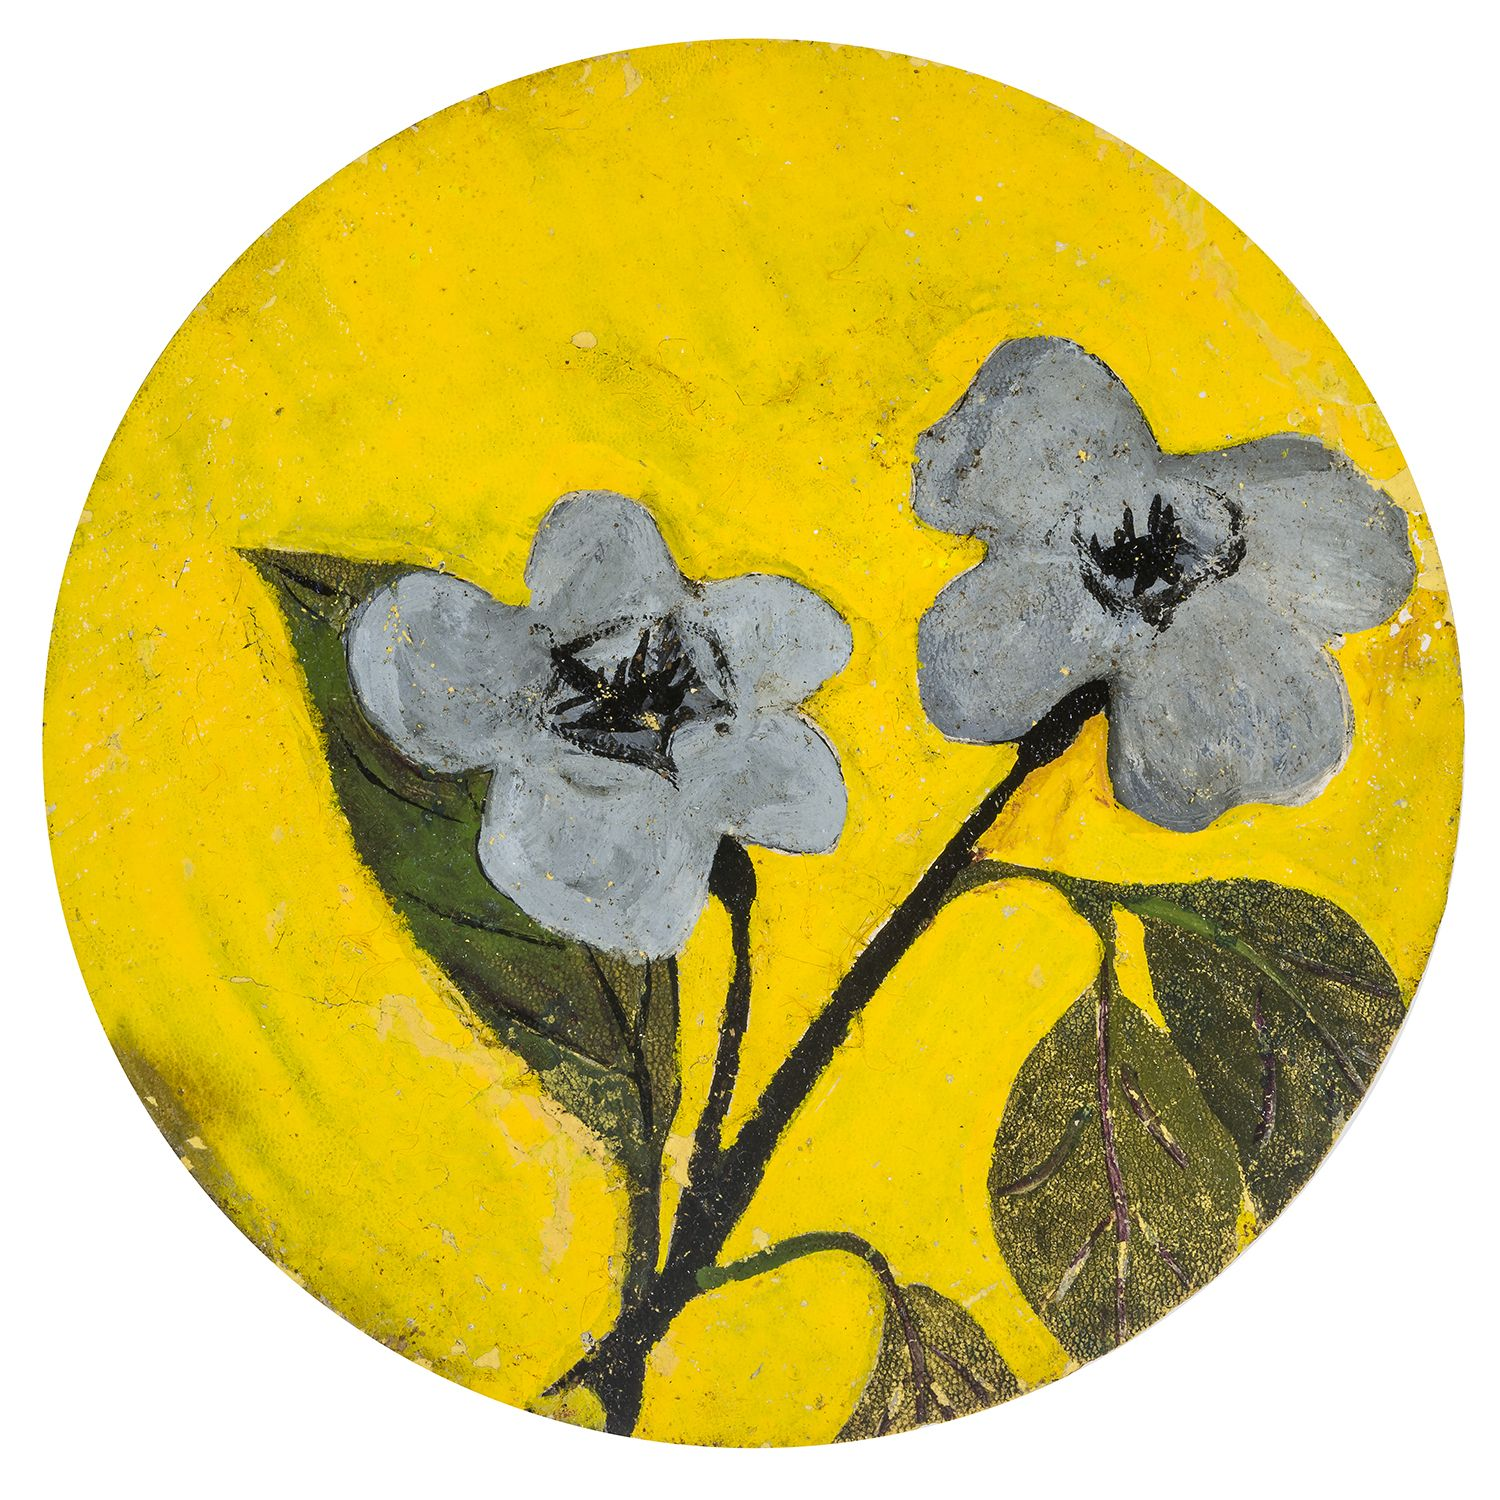 a tondo-painting by Frank Walter of flowers on a yellow background